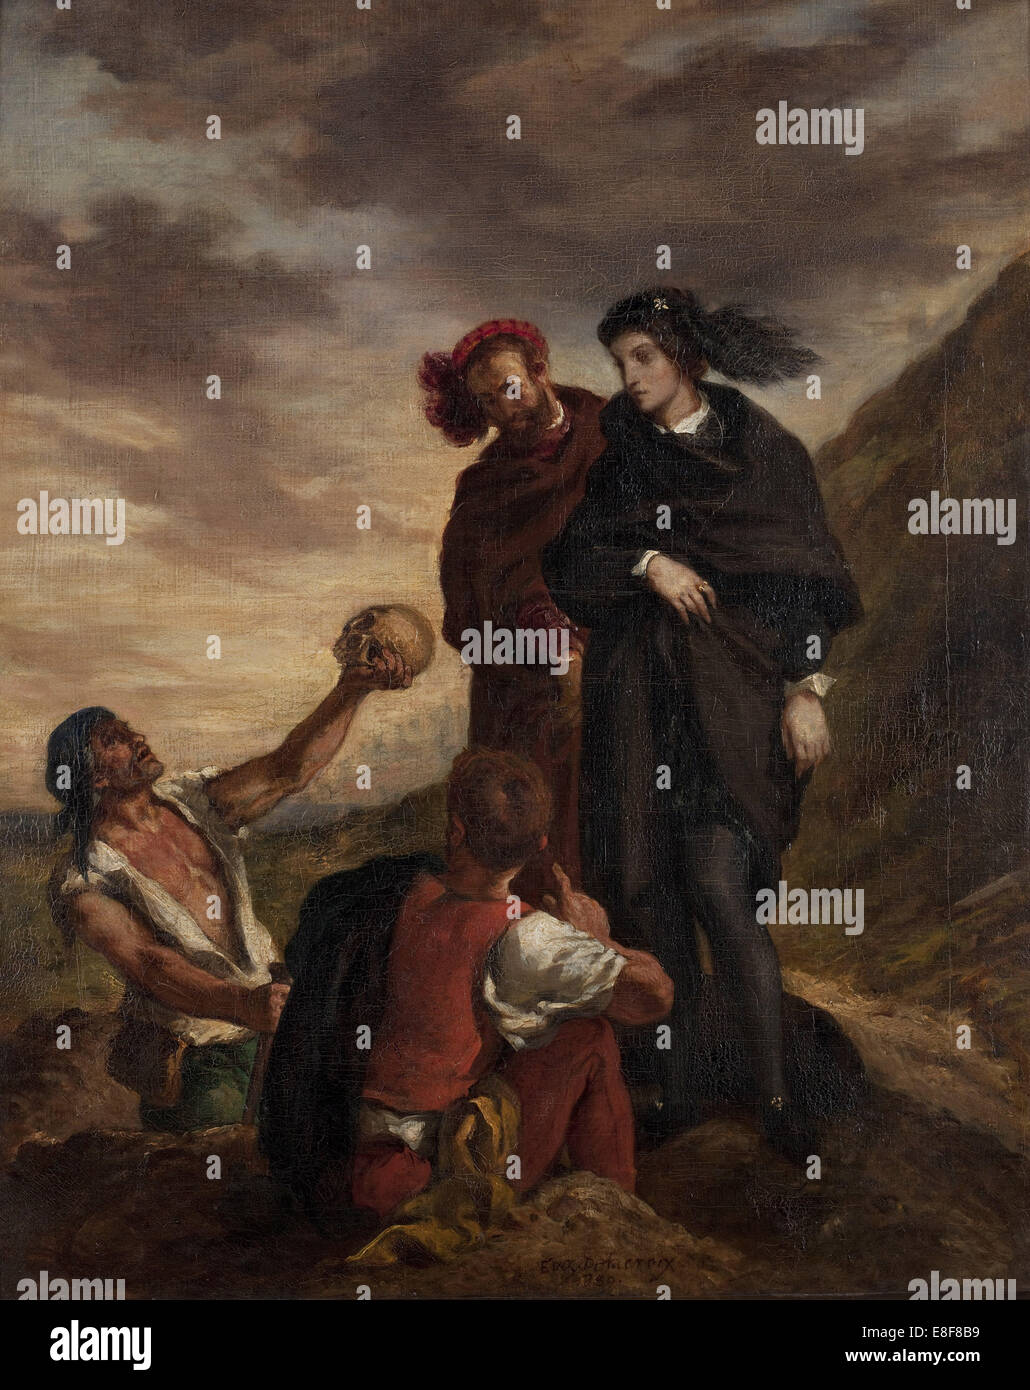 Hamlet and Horatio in the Graveyard. Artist: Delacroix, Eugène (1798-1863) - Stock Image